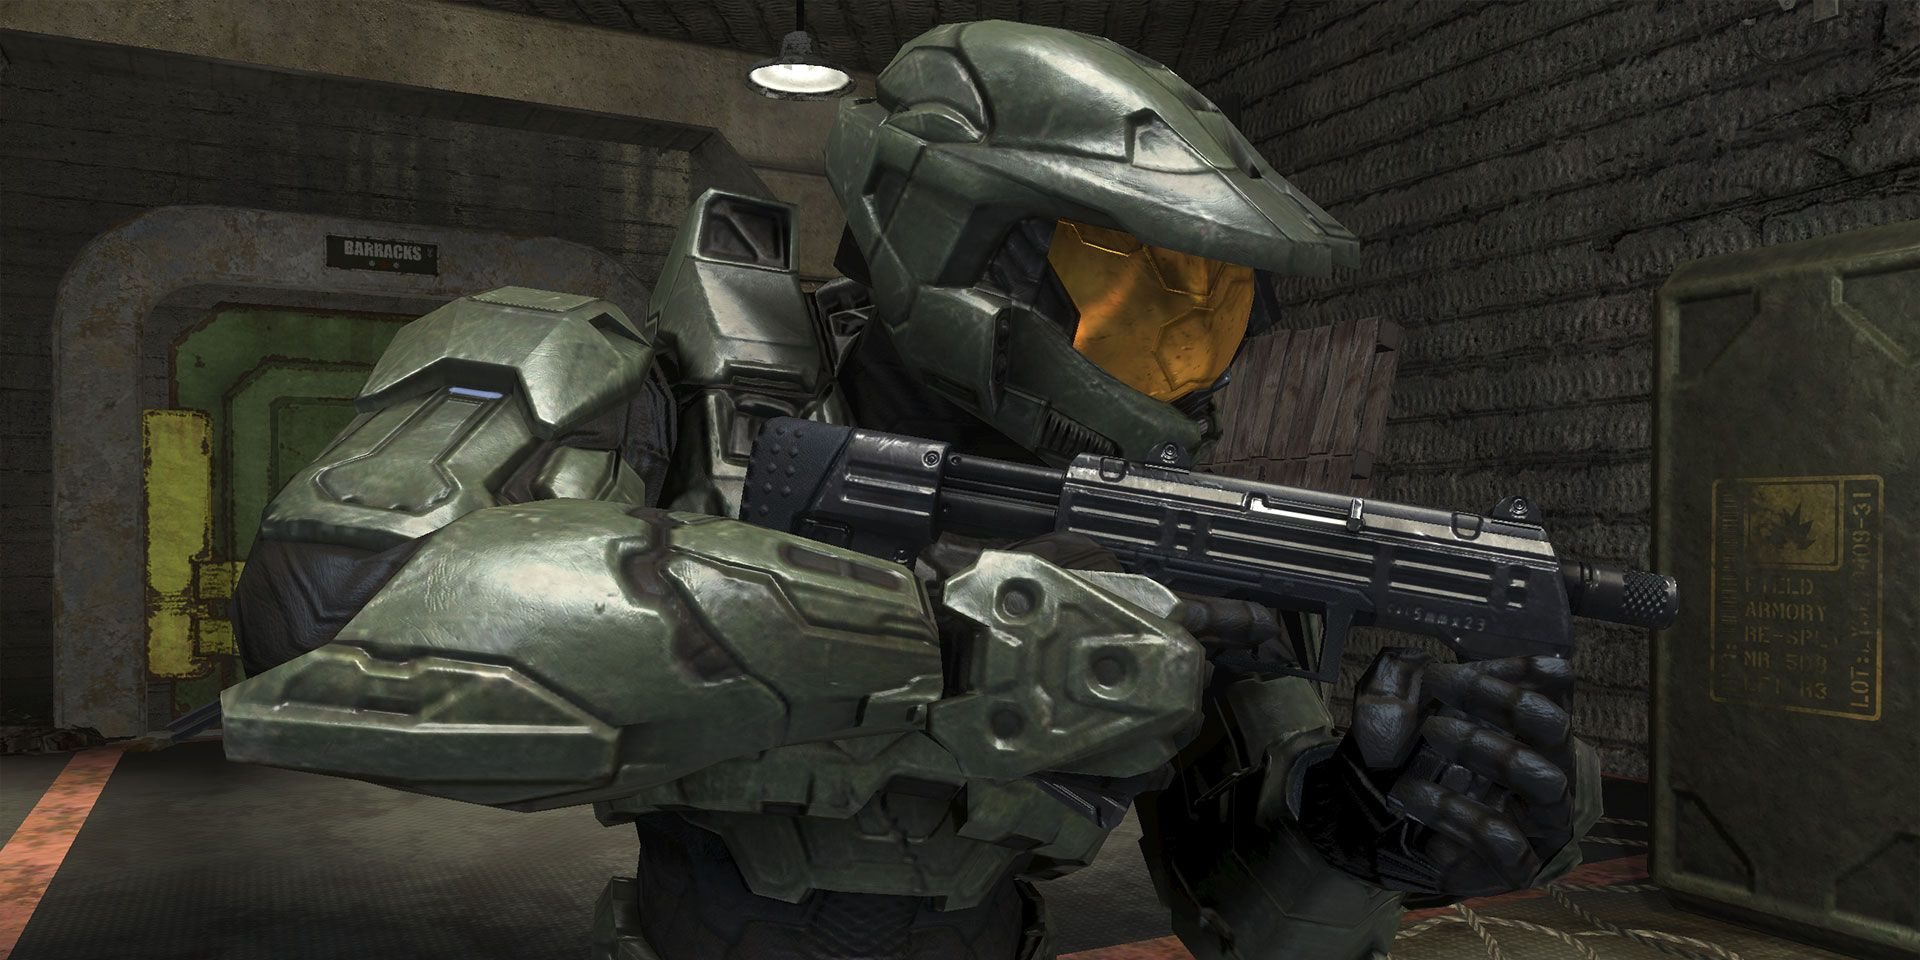 Halo 3 S Legendary Difficulty Gets Beaten With A Guitar Hero